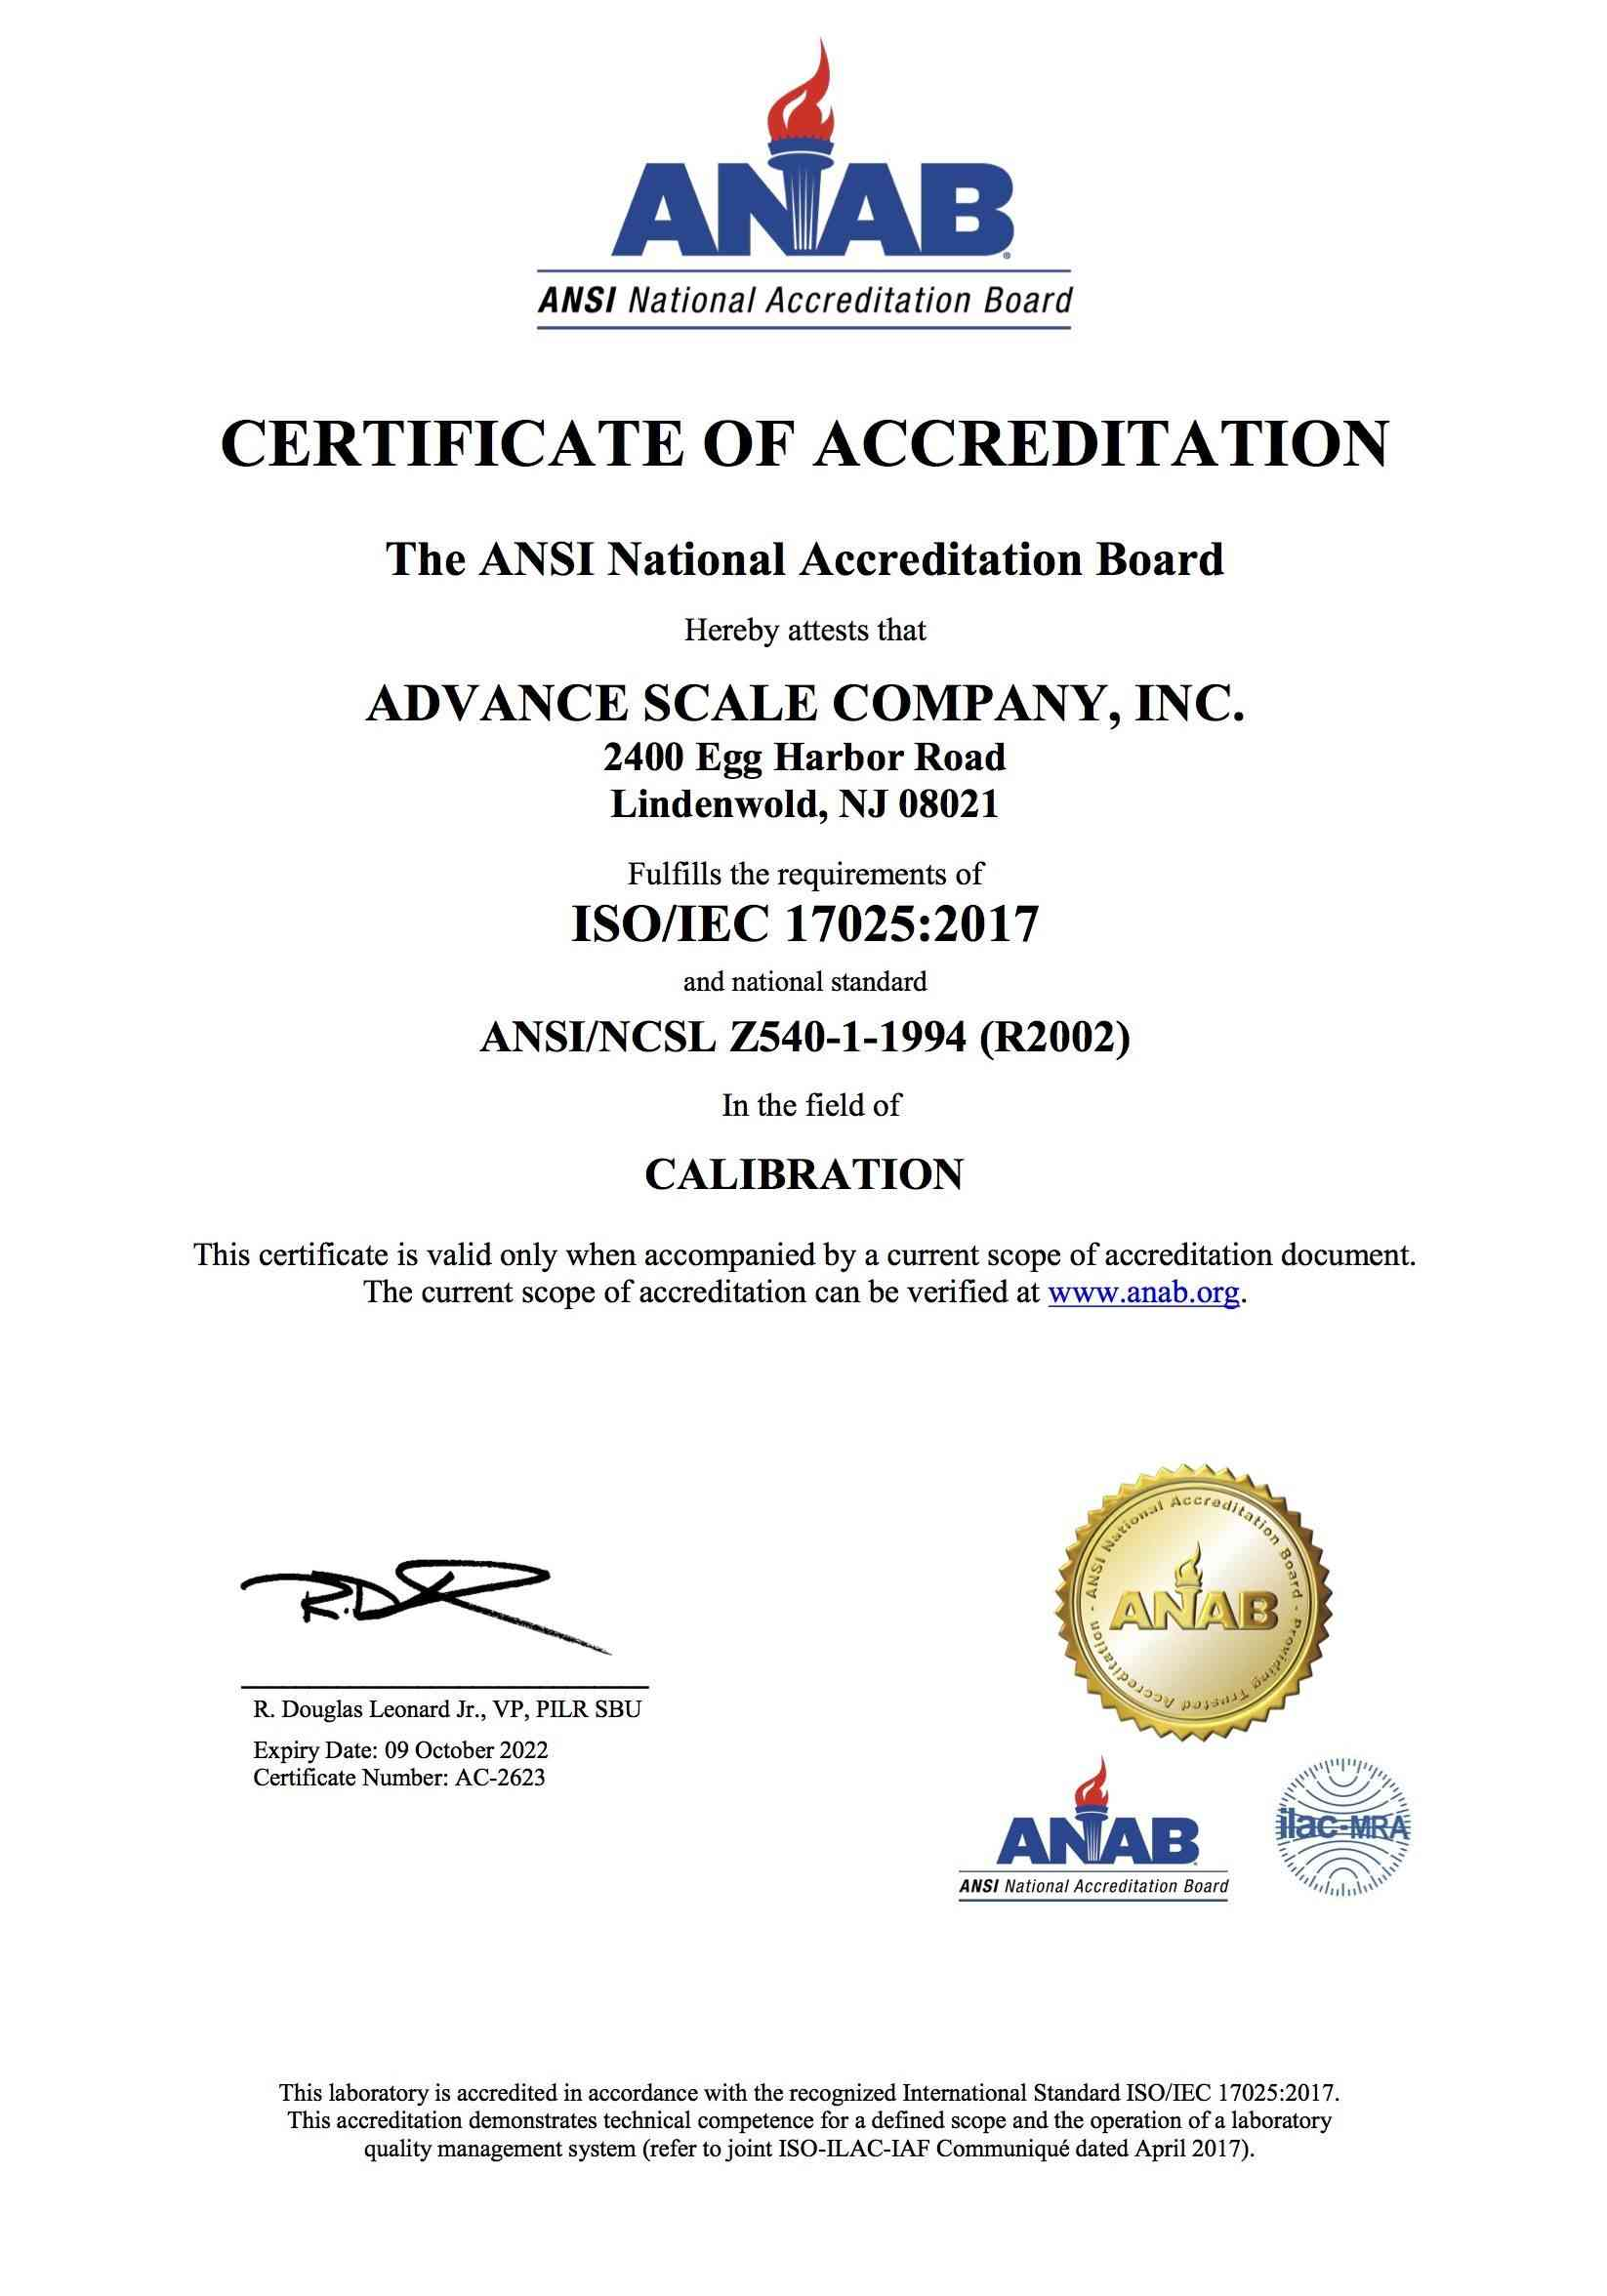 ISO/IEC 17025:2017 and national standard ANSI/NCSL Z540-1-1994 (R2002)